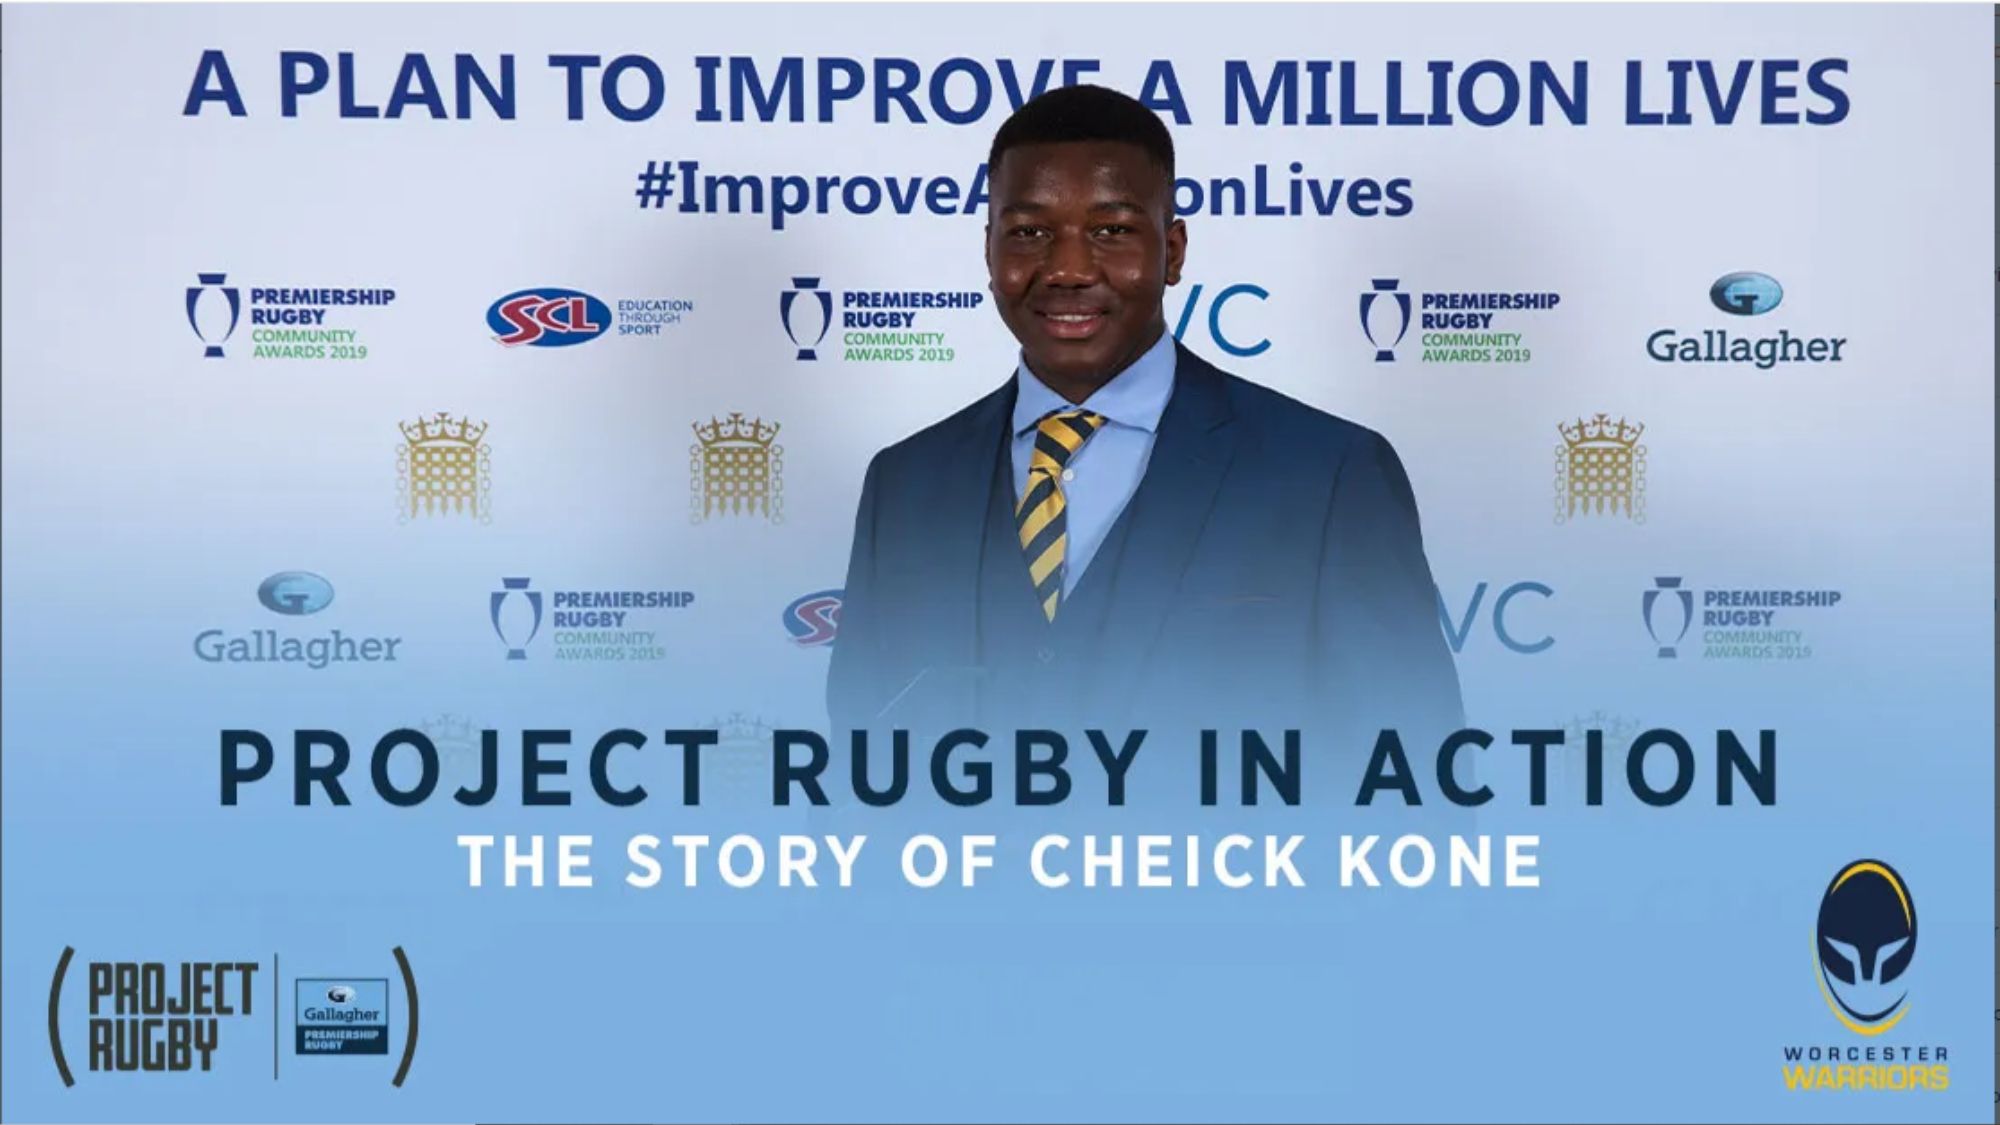 Meet Cheick Kone one of the stars of the Project Rugby programme